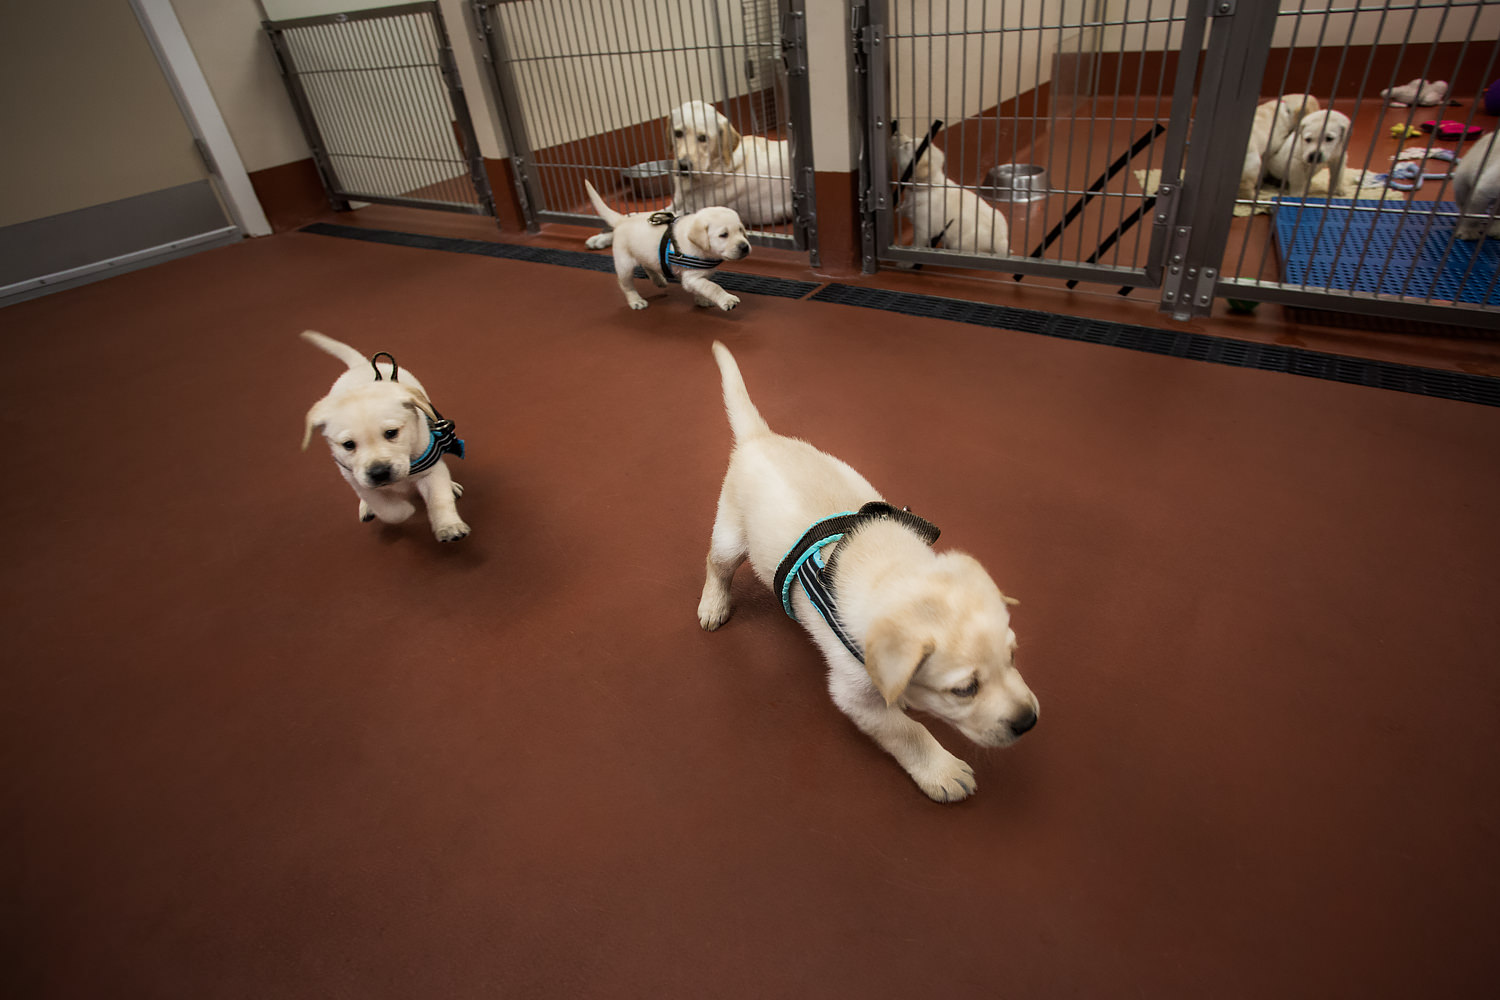 Guiding Eyes pups play in pretend harnesses.